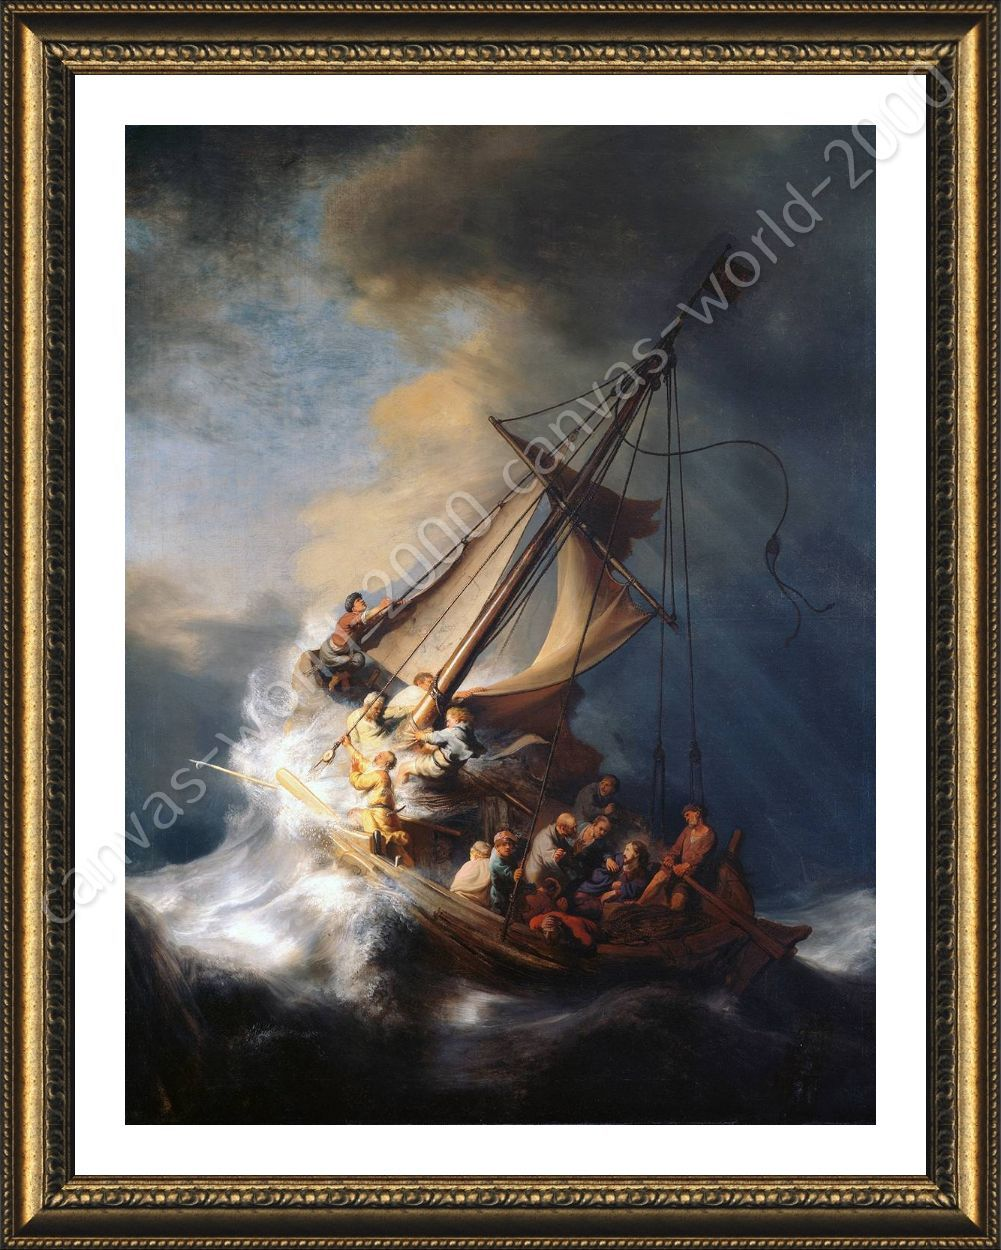 Framed poster christ in the storm sea of galilee rembrandt framed framed poster christ in the storm sea of galilee rembrandt framed wall decor publicscrutiny Choice Image